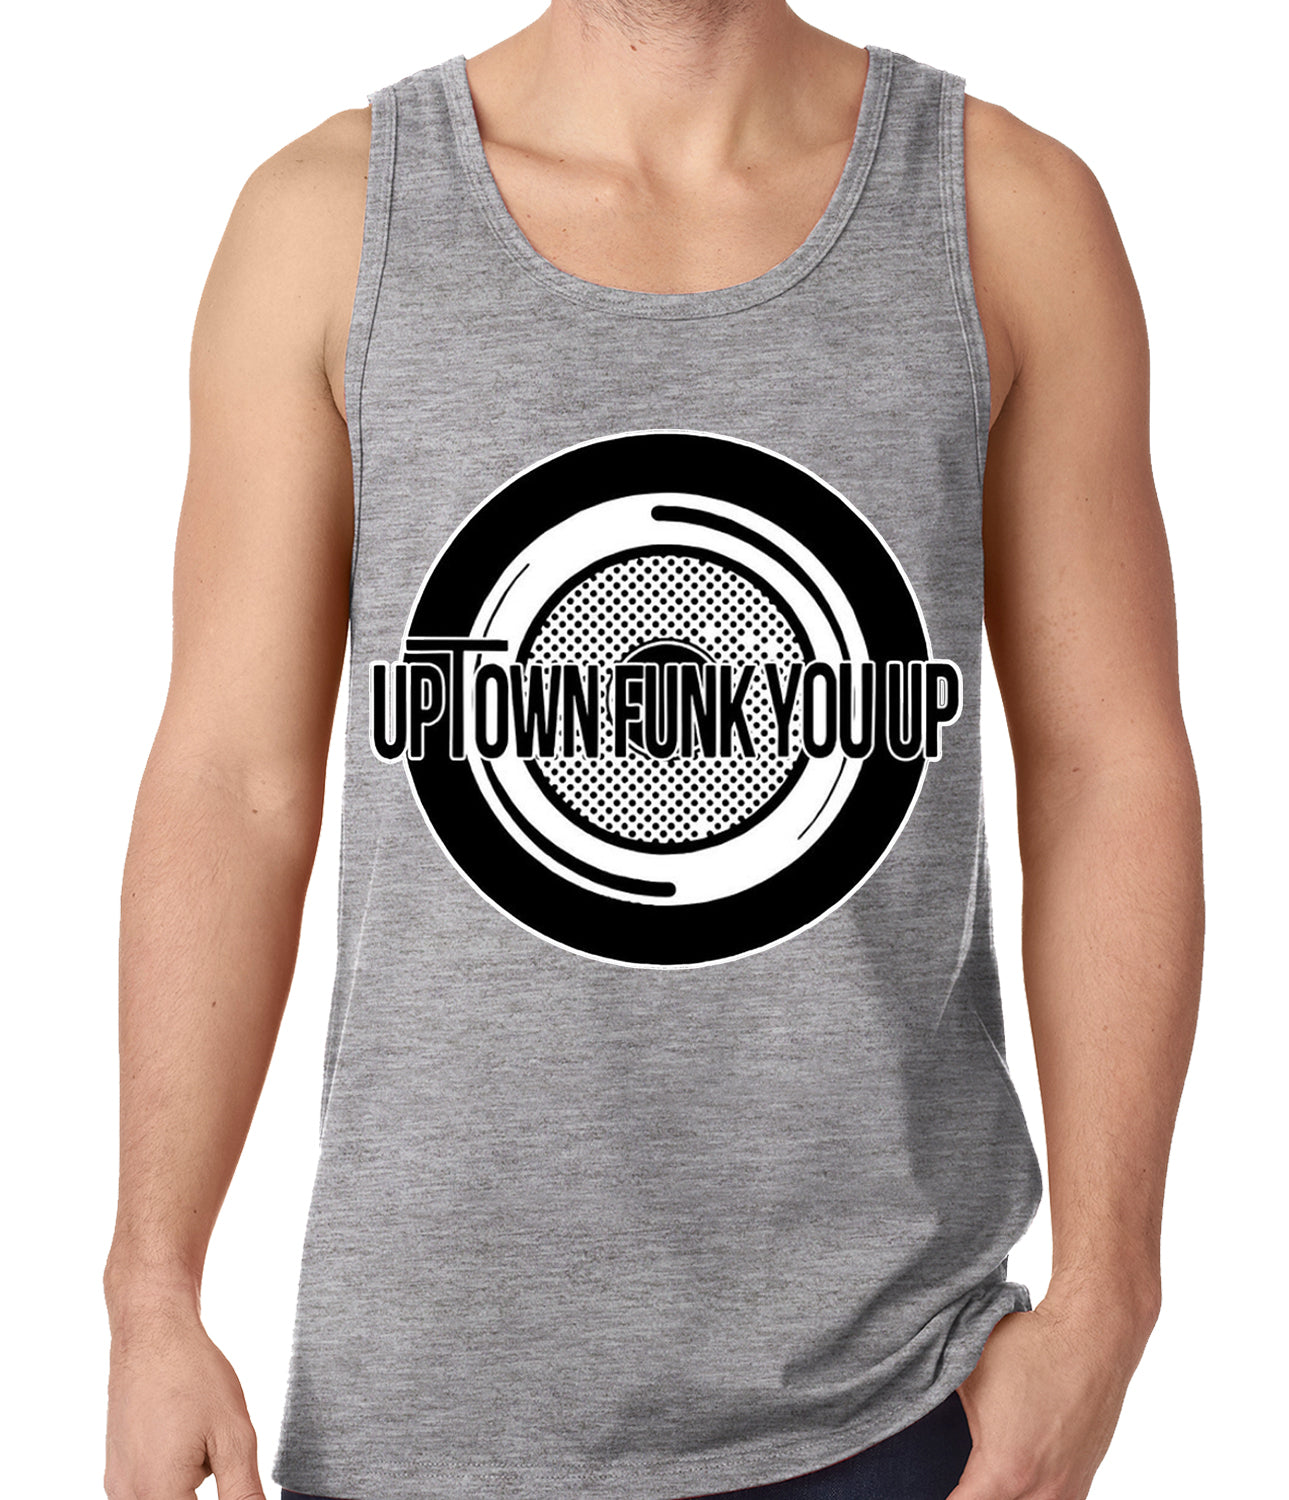 Uptown Funk You Up Record Tank Top